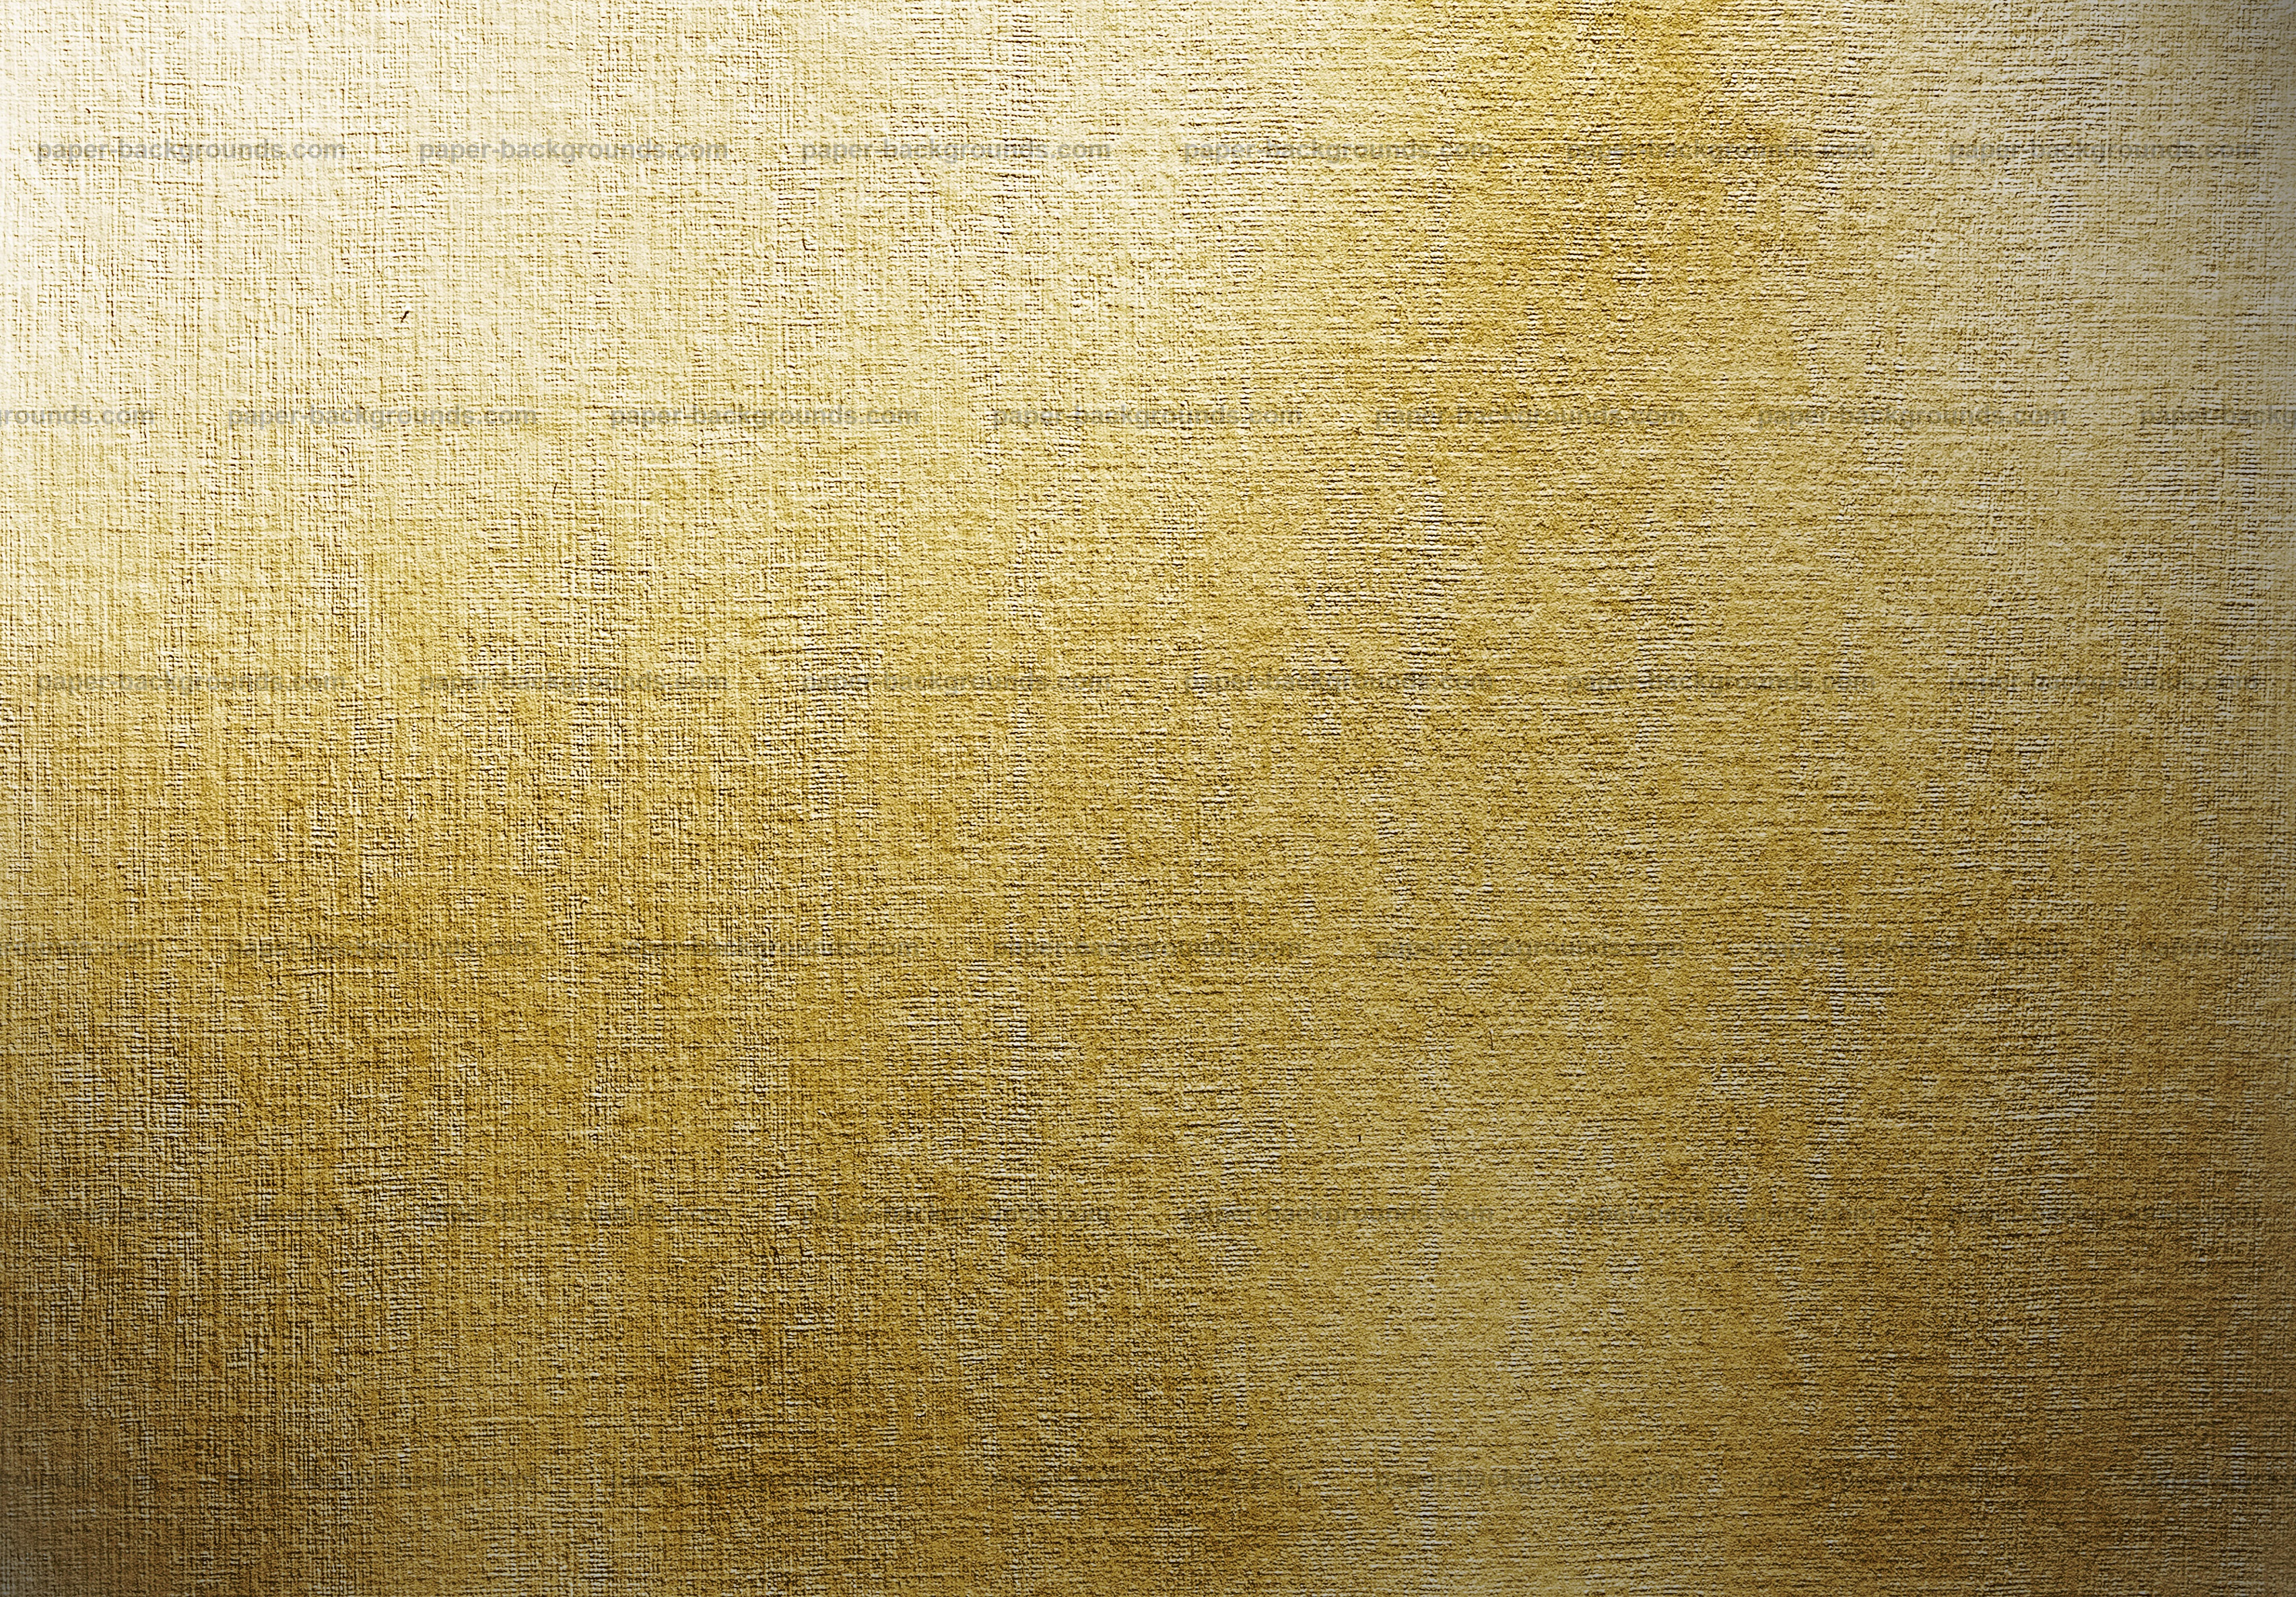 Grunge Old Texture Paper Background